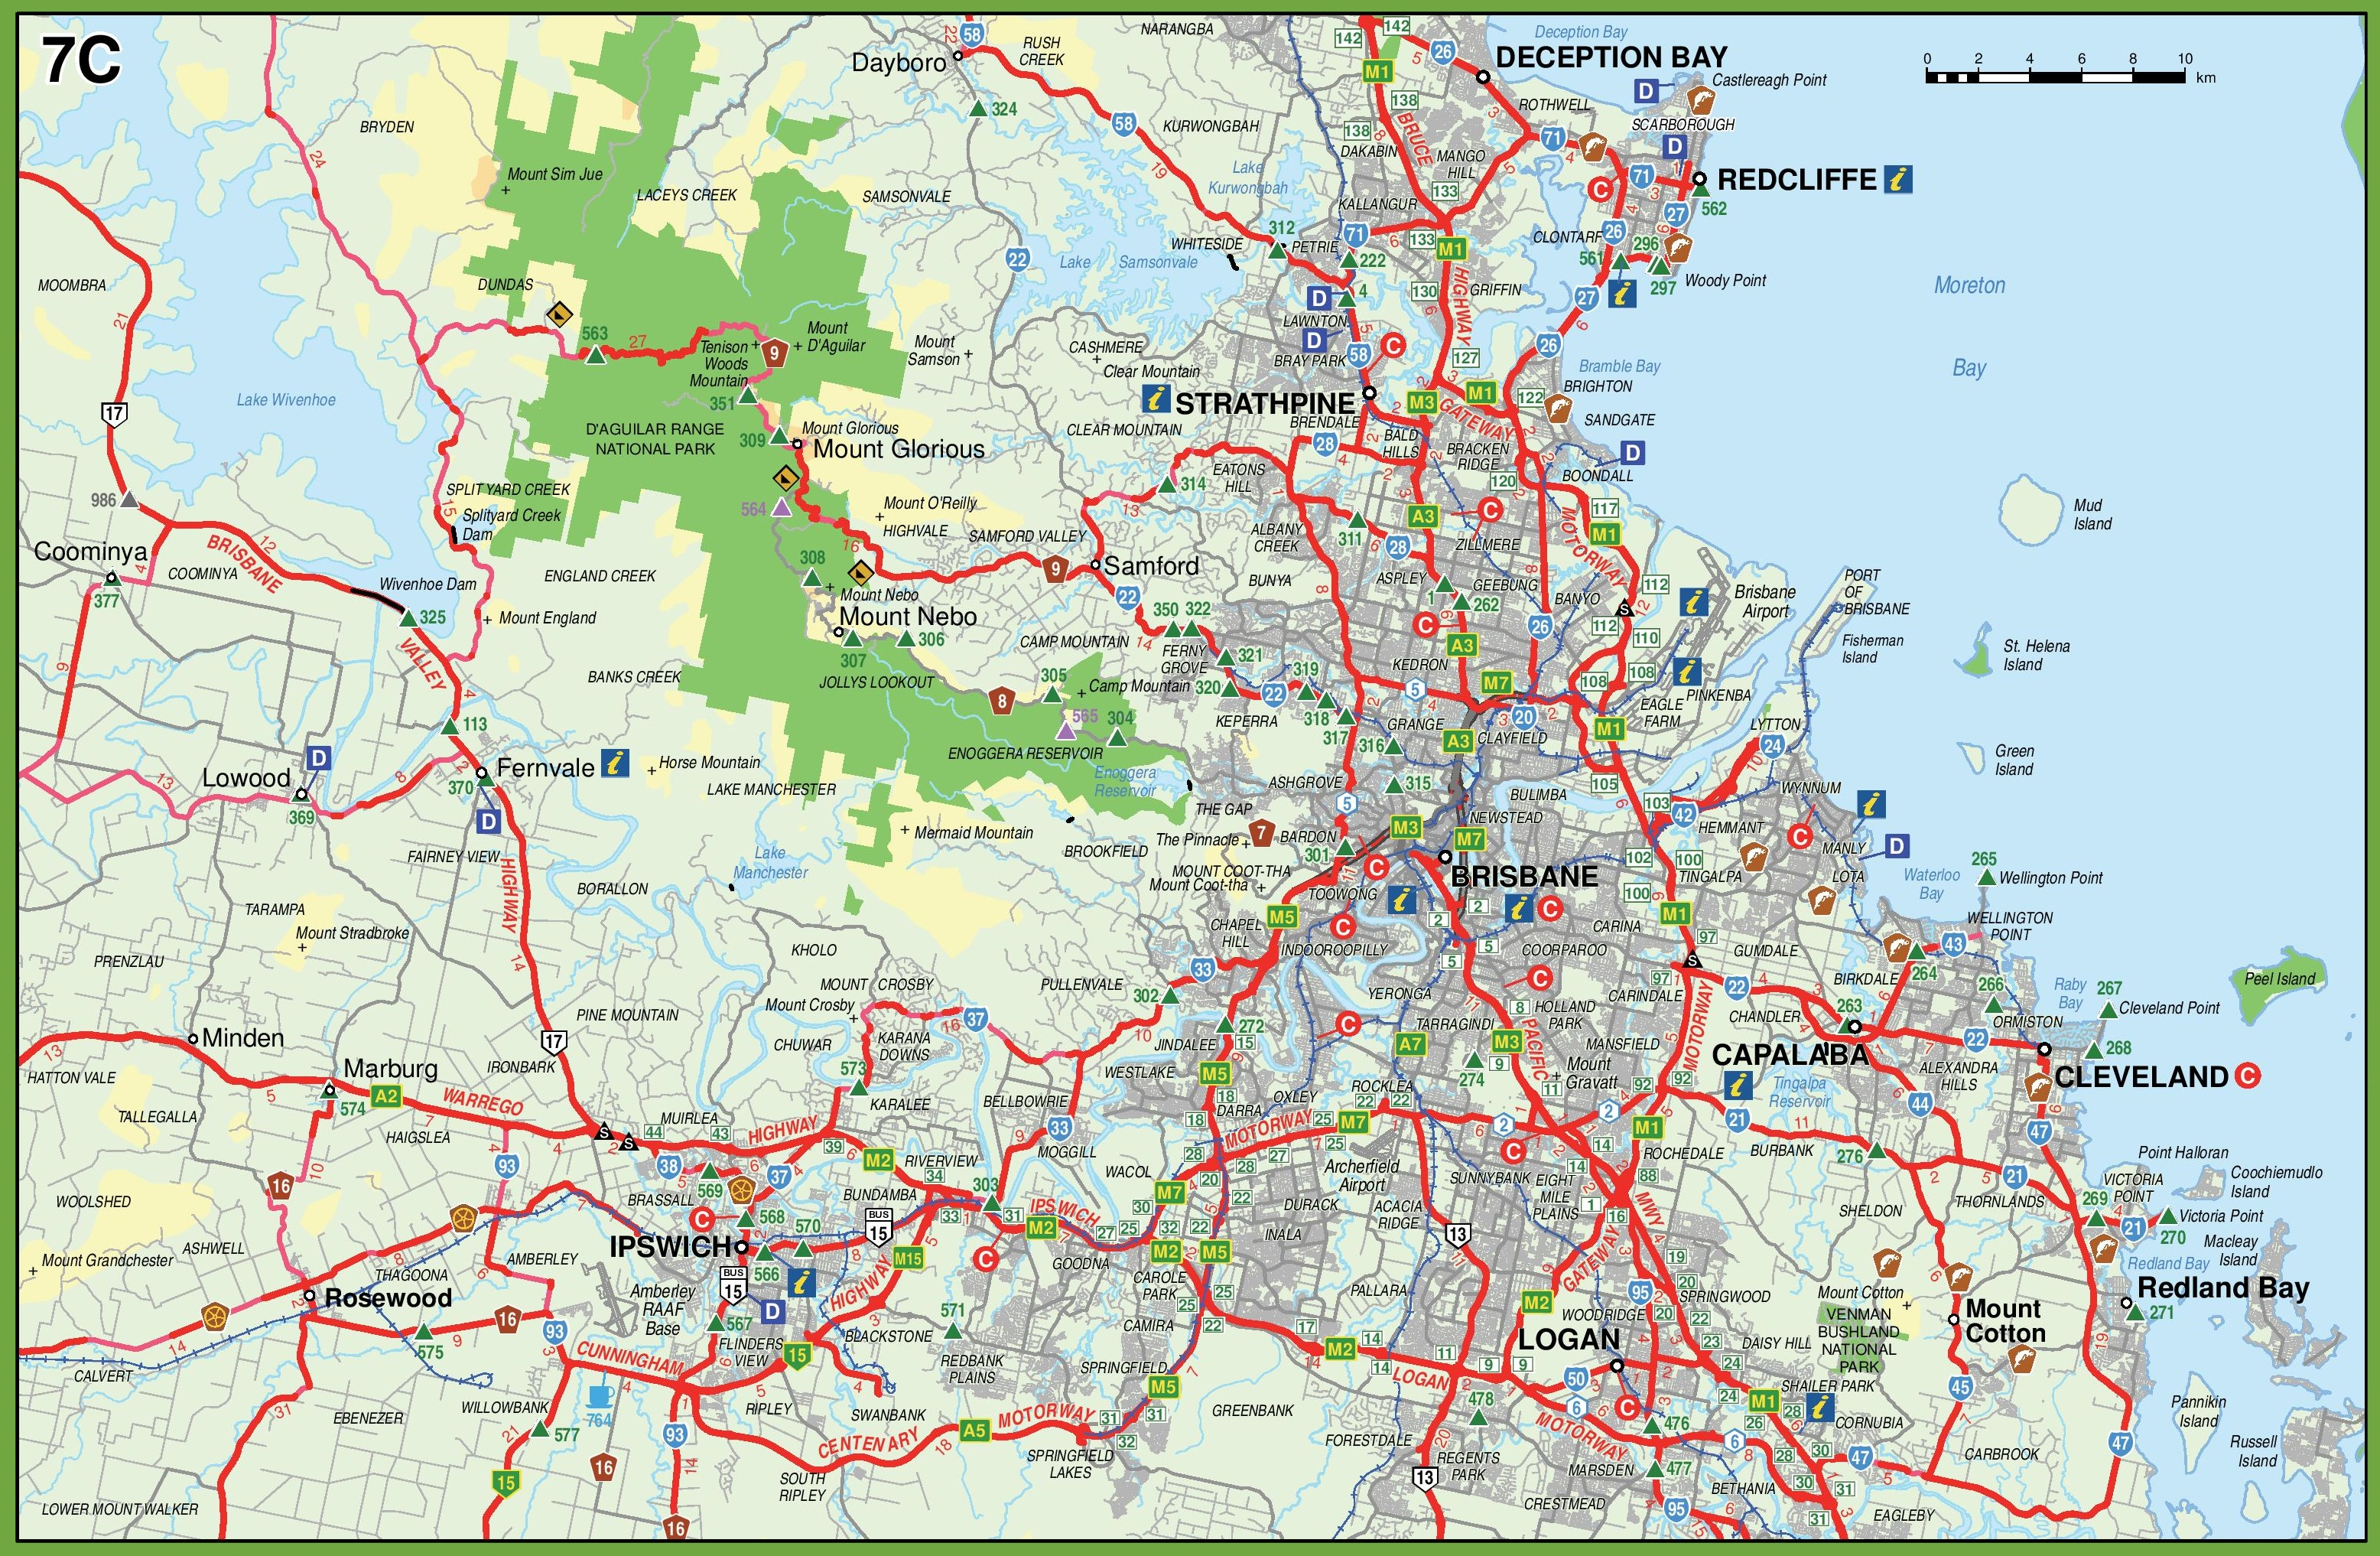 Map of surroundings of Brisbane